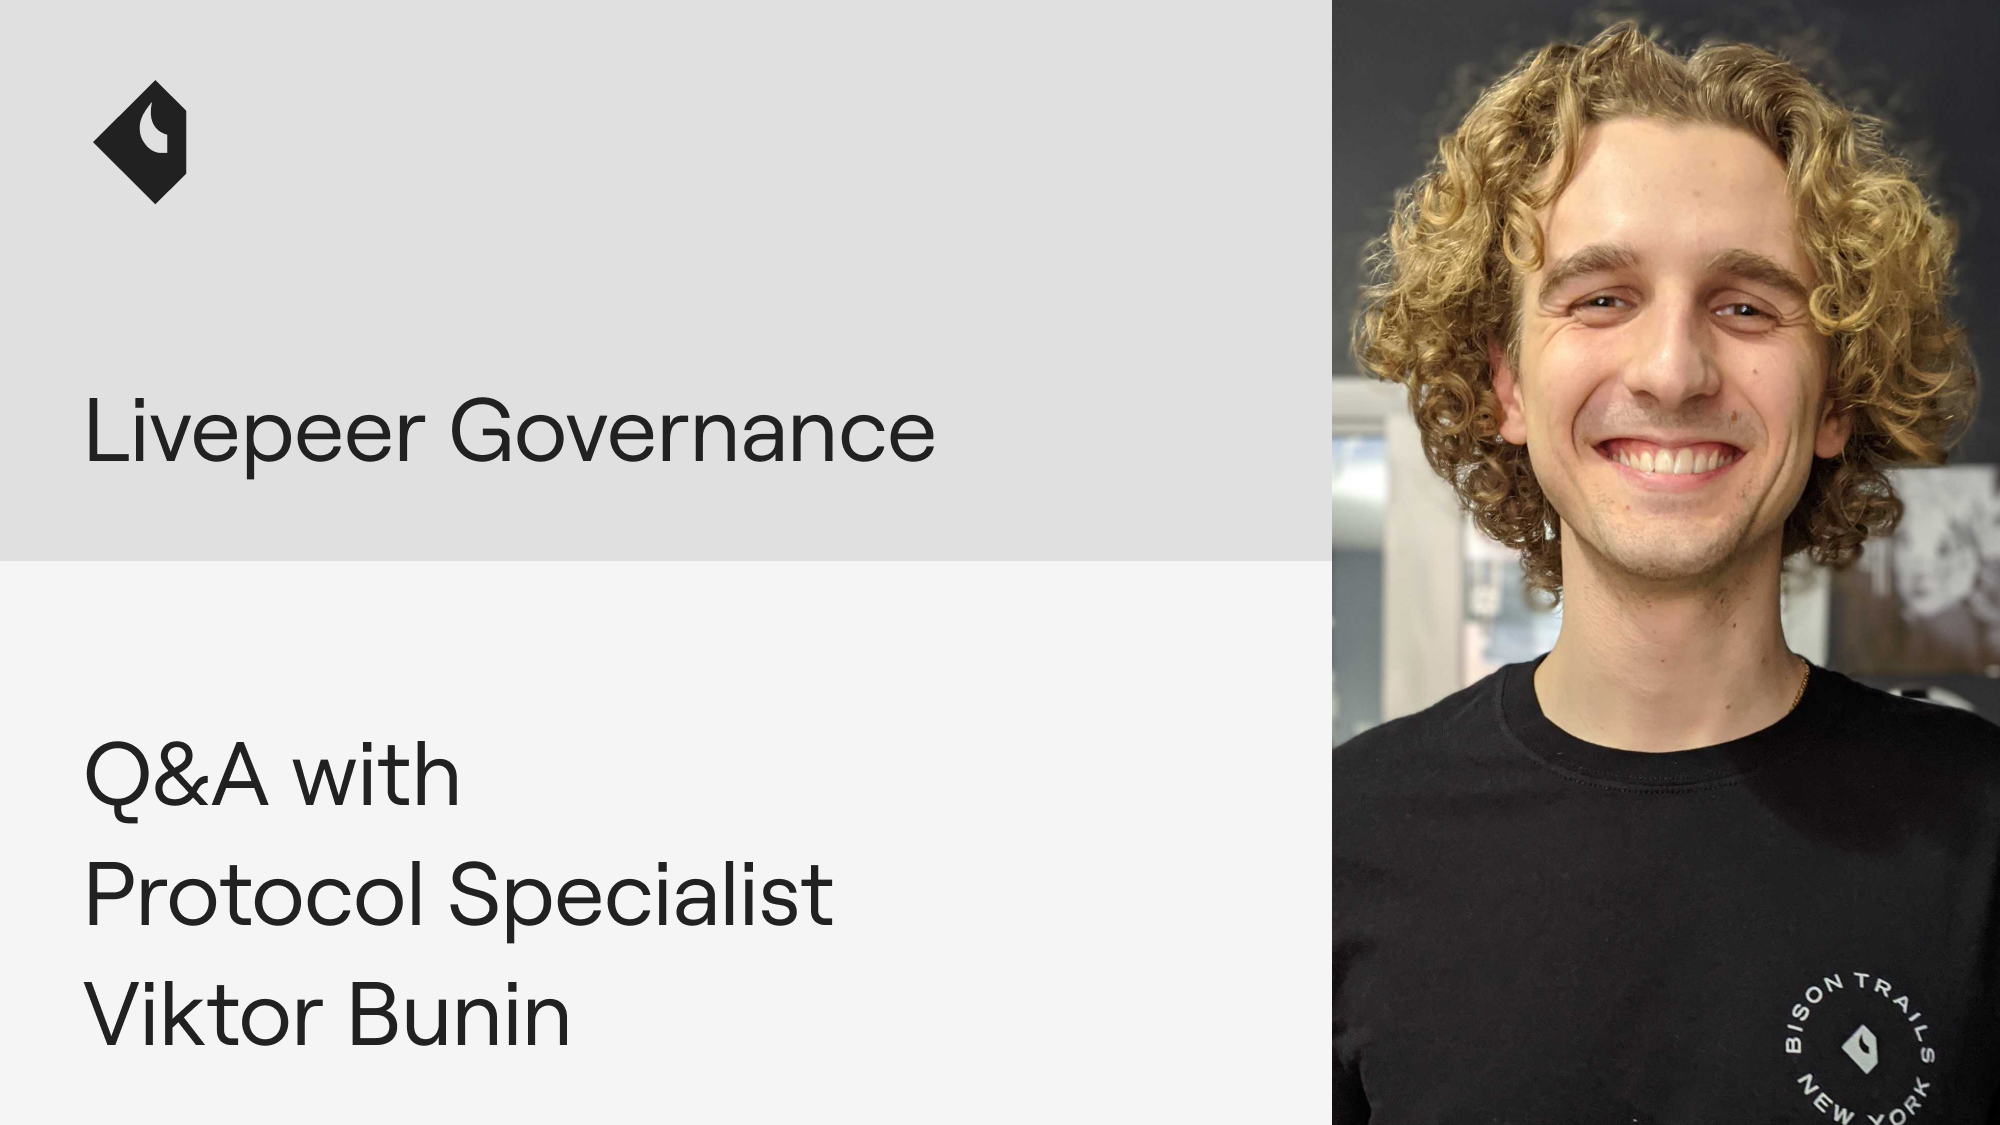 Livepeer governance: Q&A with Protocol Specialist Viktor Bunin